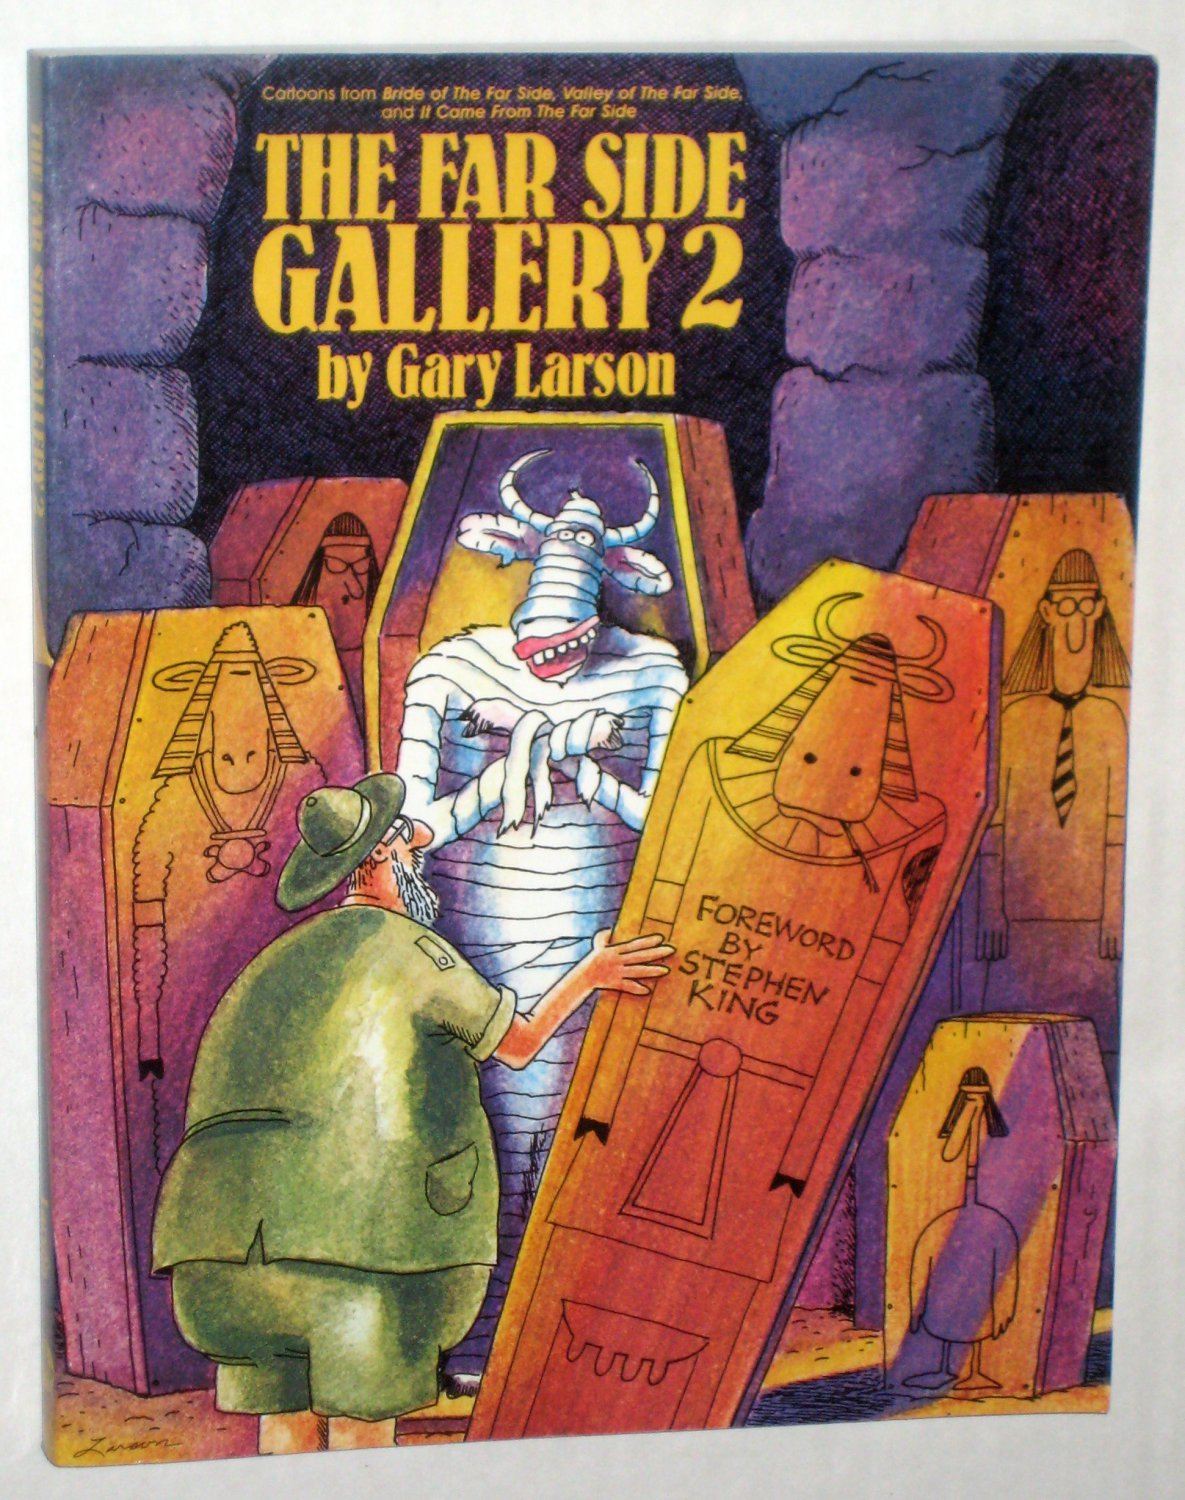 The Far Side Gallery 2 Softcover Paperback Gary Larson Humor Cartoons Comics